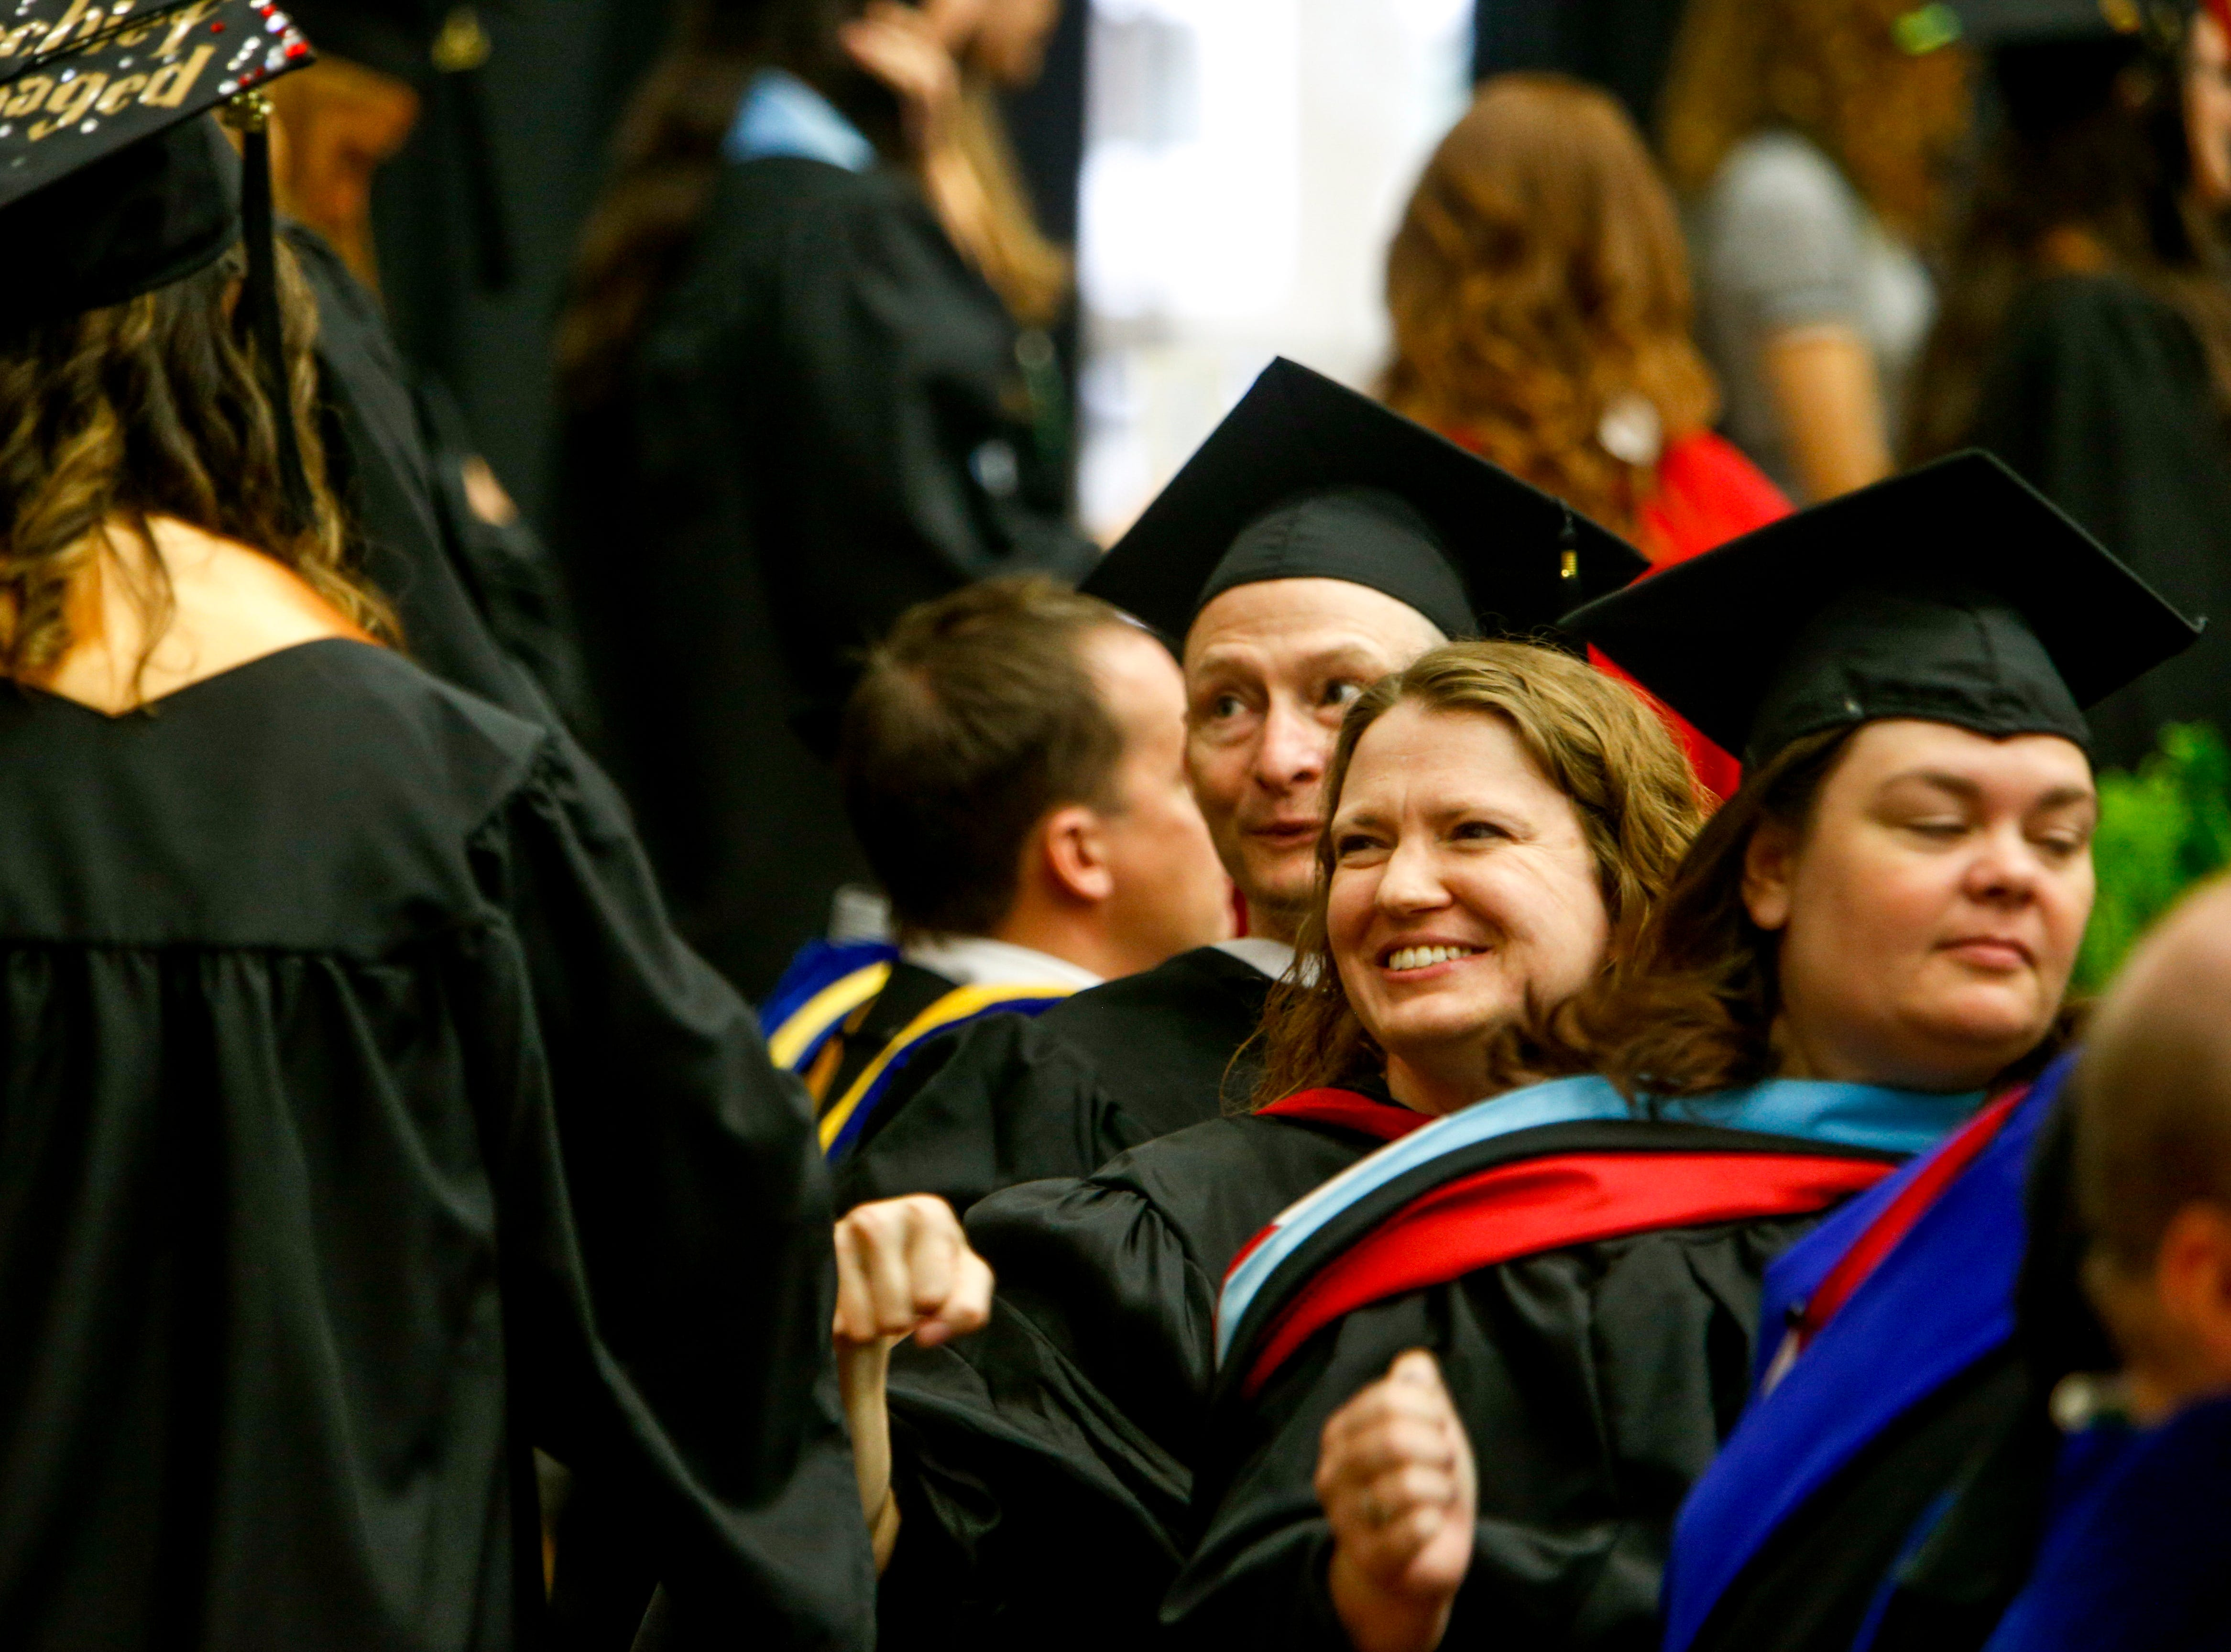 Teachers greet their students walking to receive their diplomas at the Austin Peay spring commencement ceremony 2019 for College of Business and College of STEM at Winfield Dunn Center in Clarksville, Tenn., on Friday, May 3, 2019.